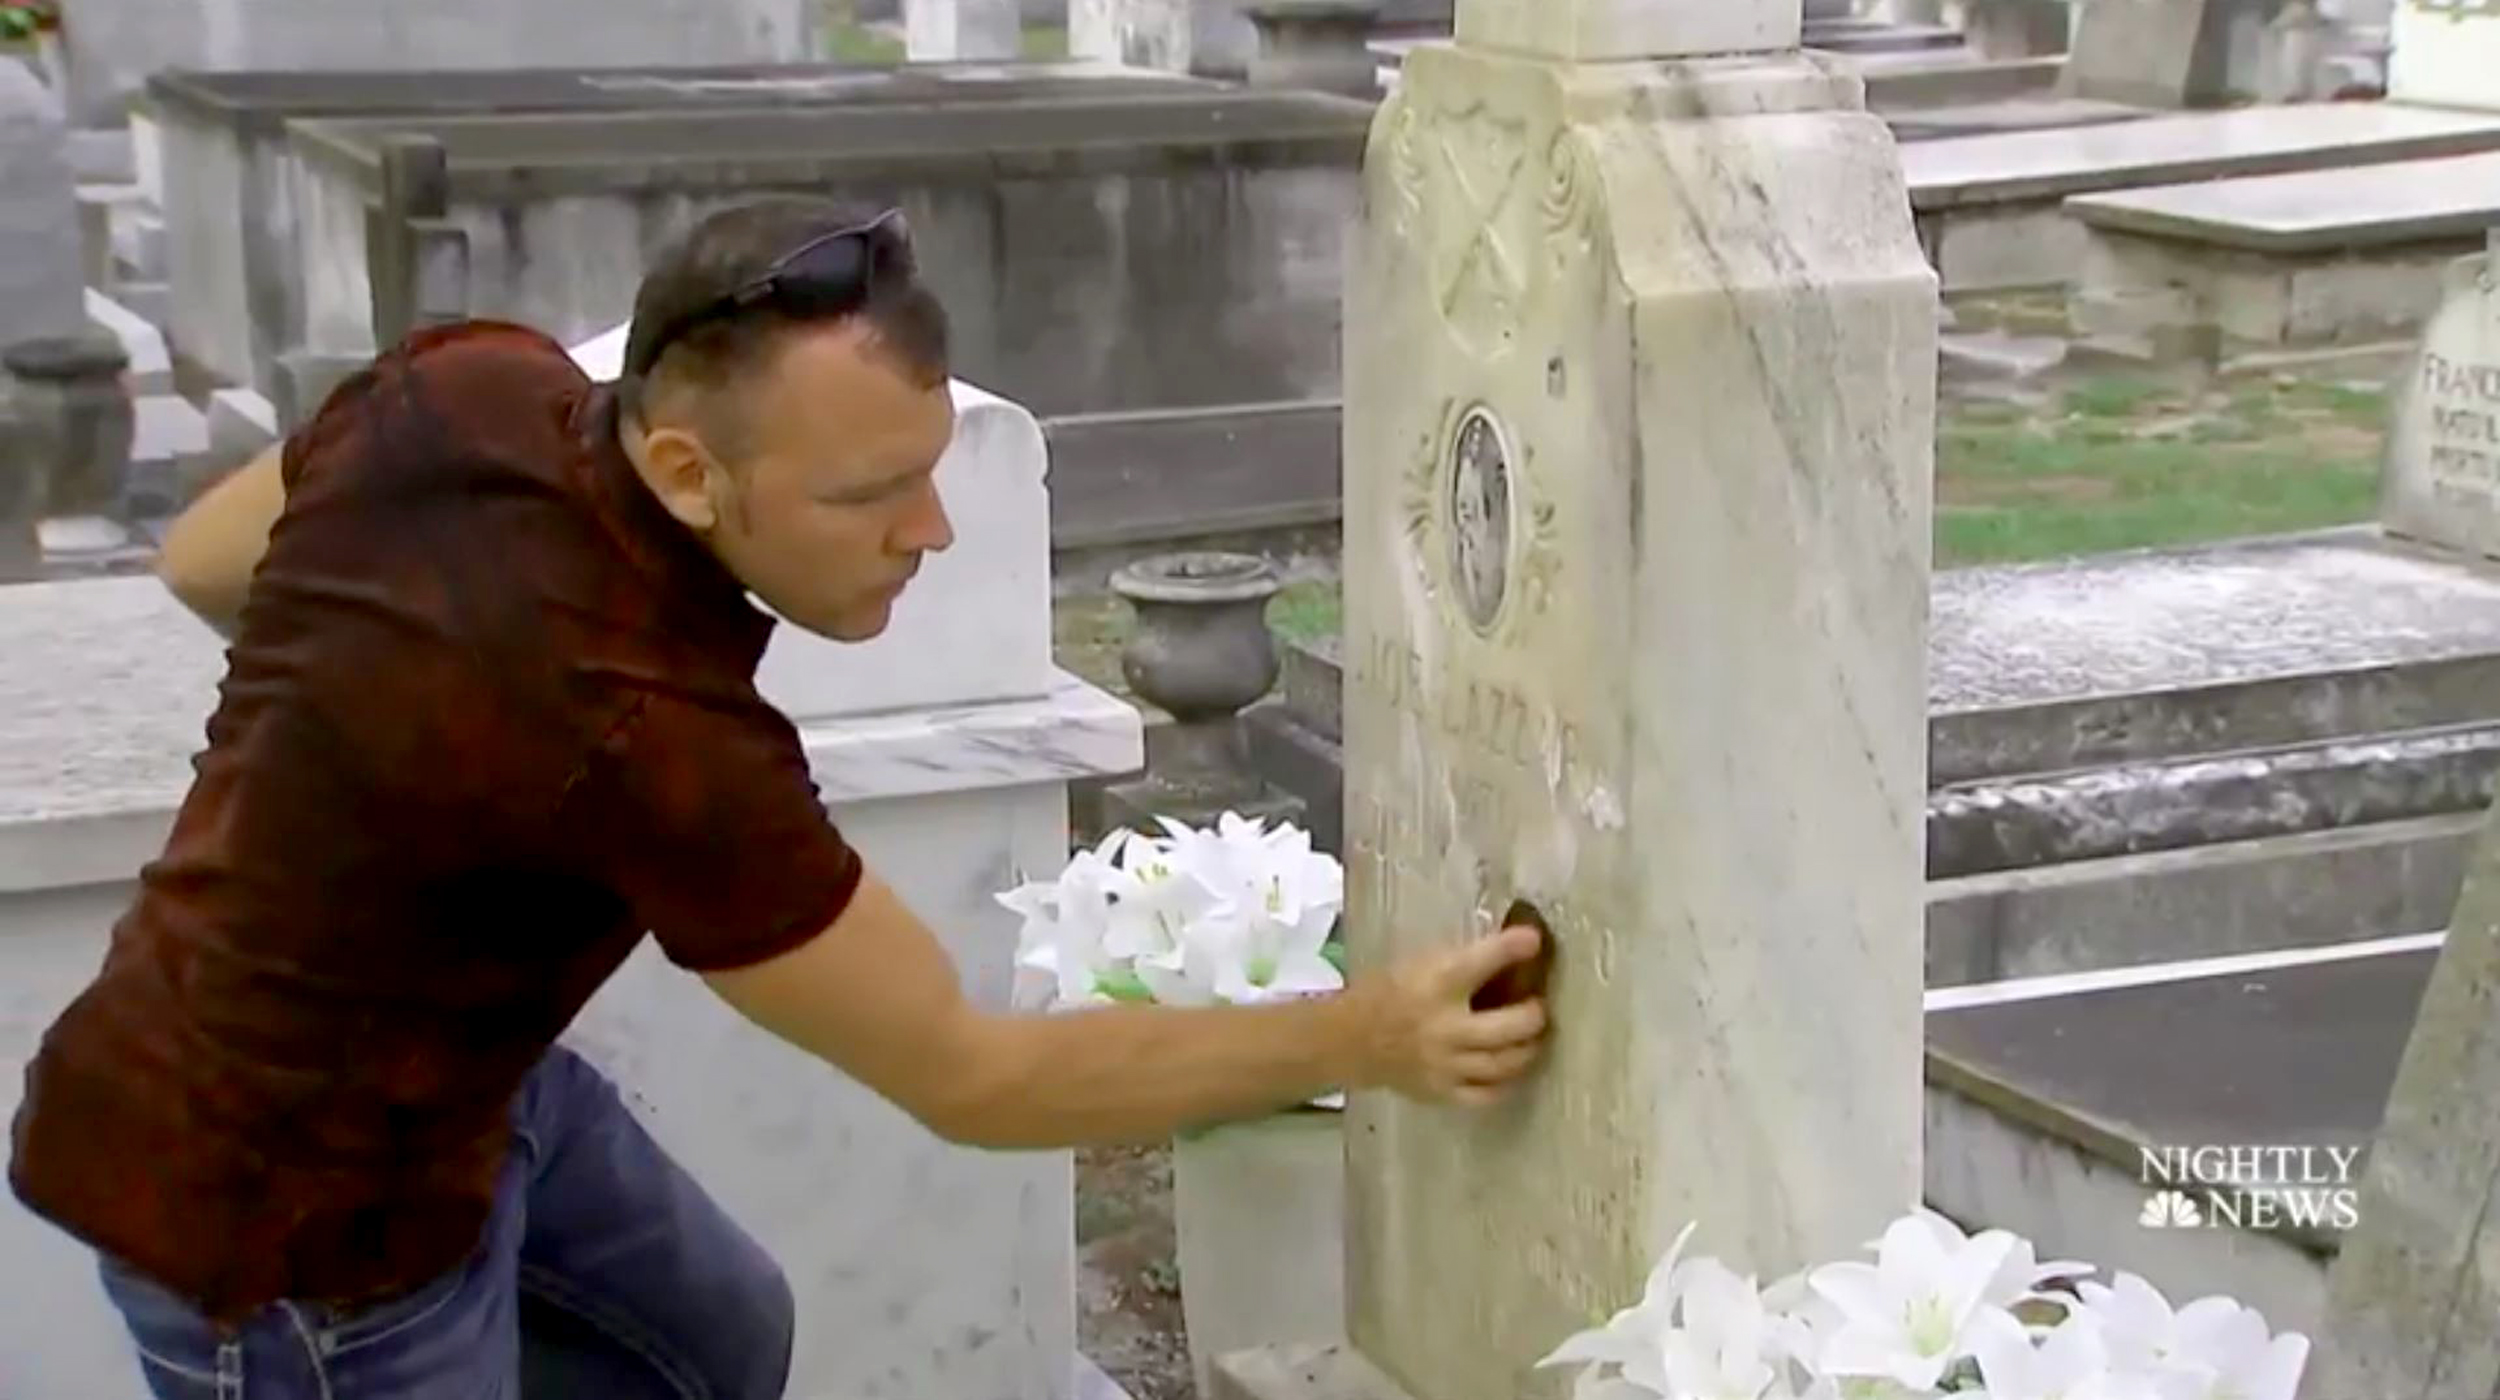 'The Good Cemeterian': Man Honors Veterans by Cleaning Headstones